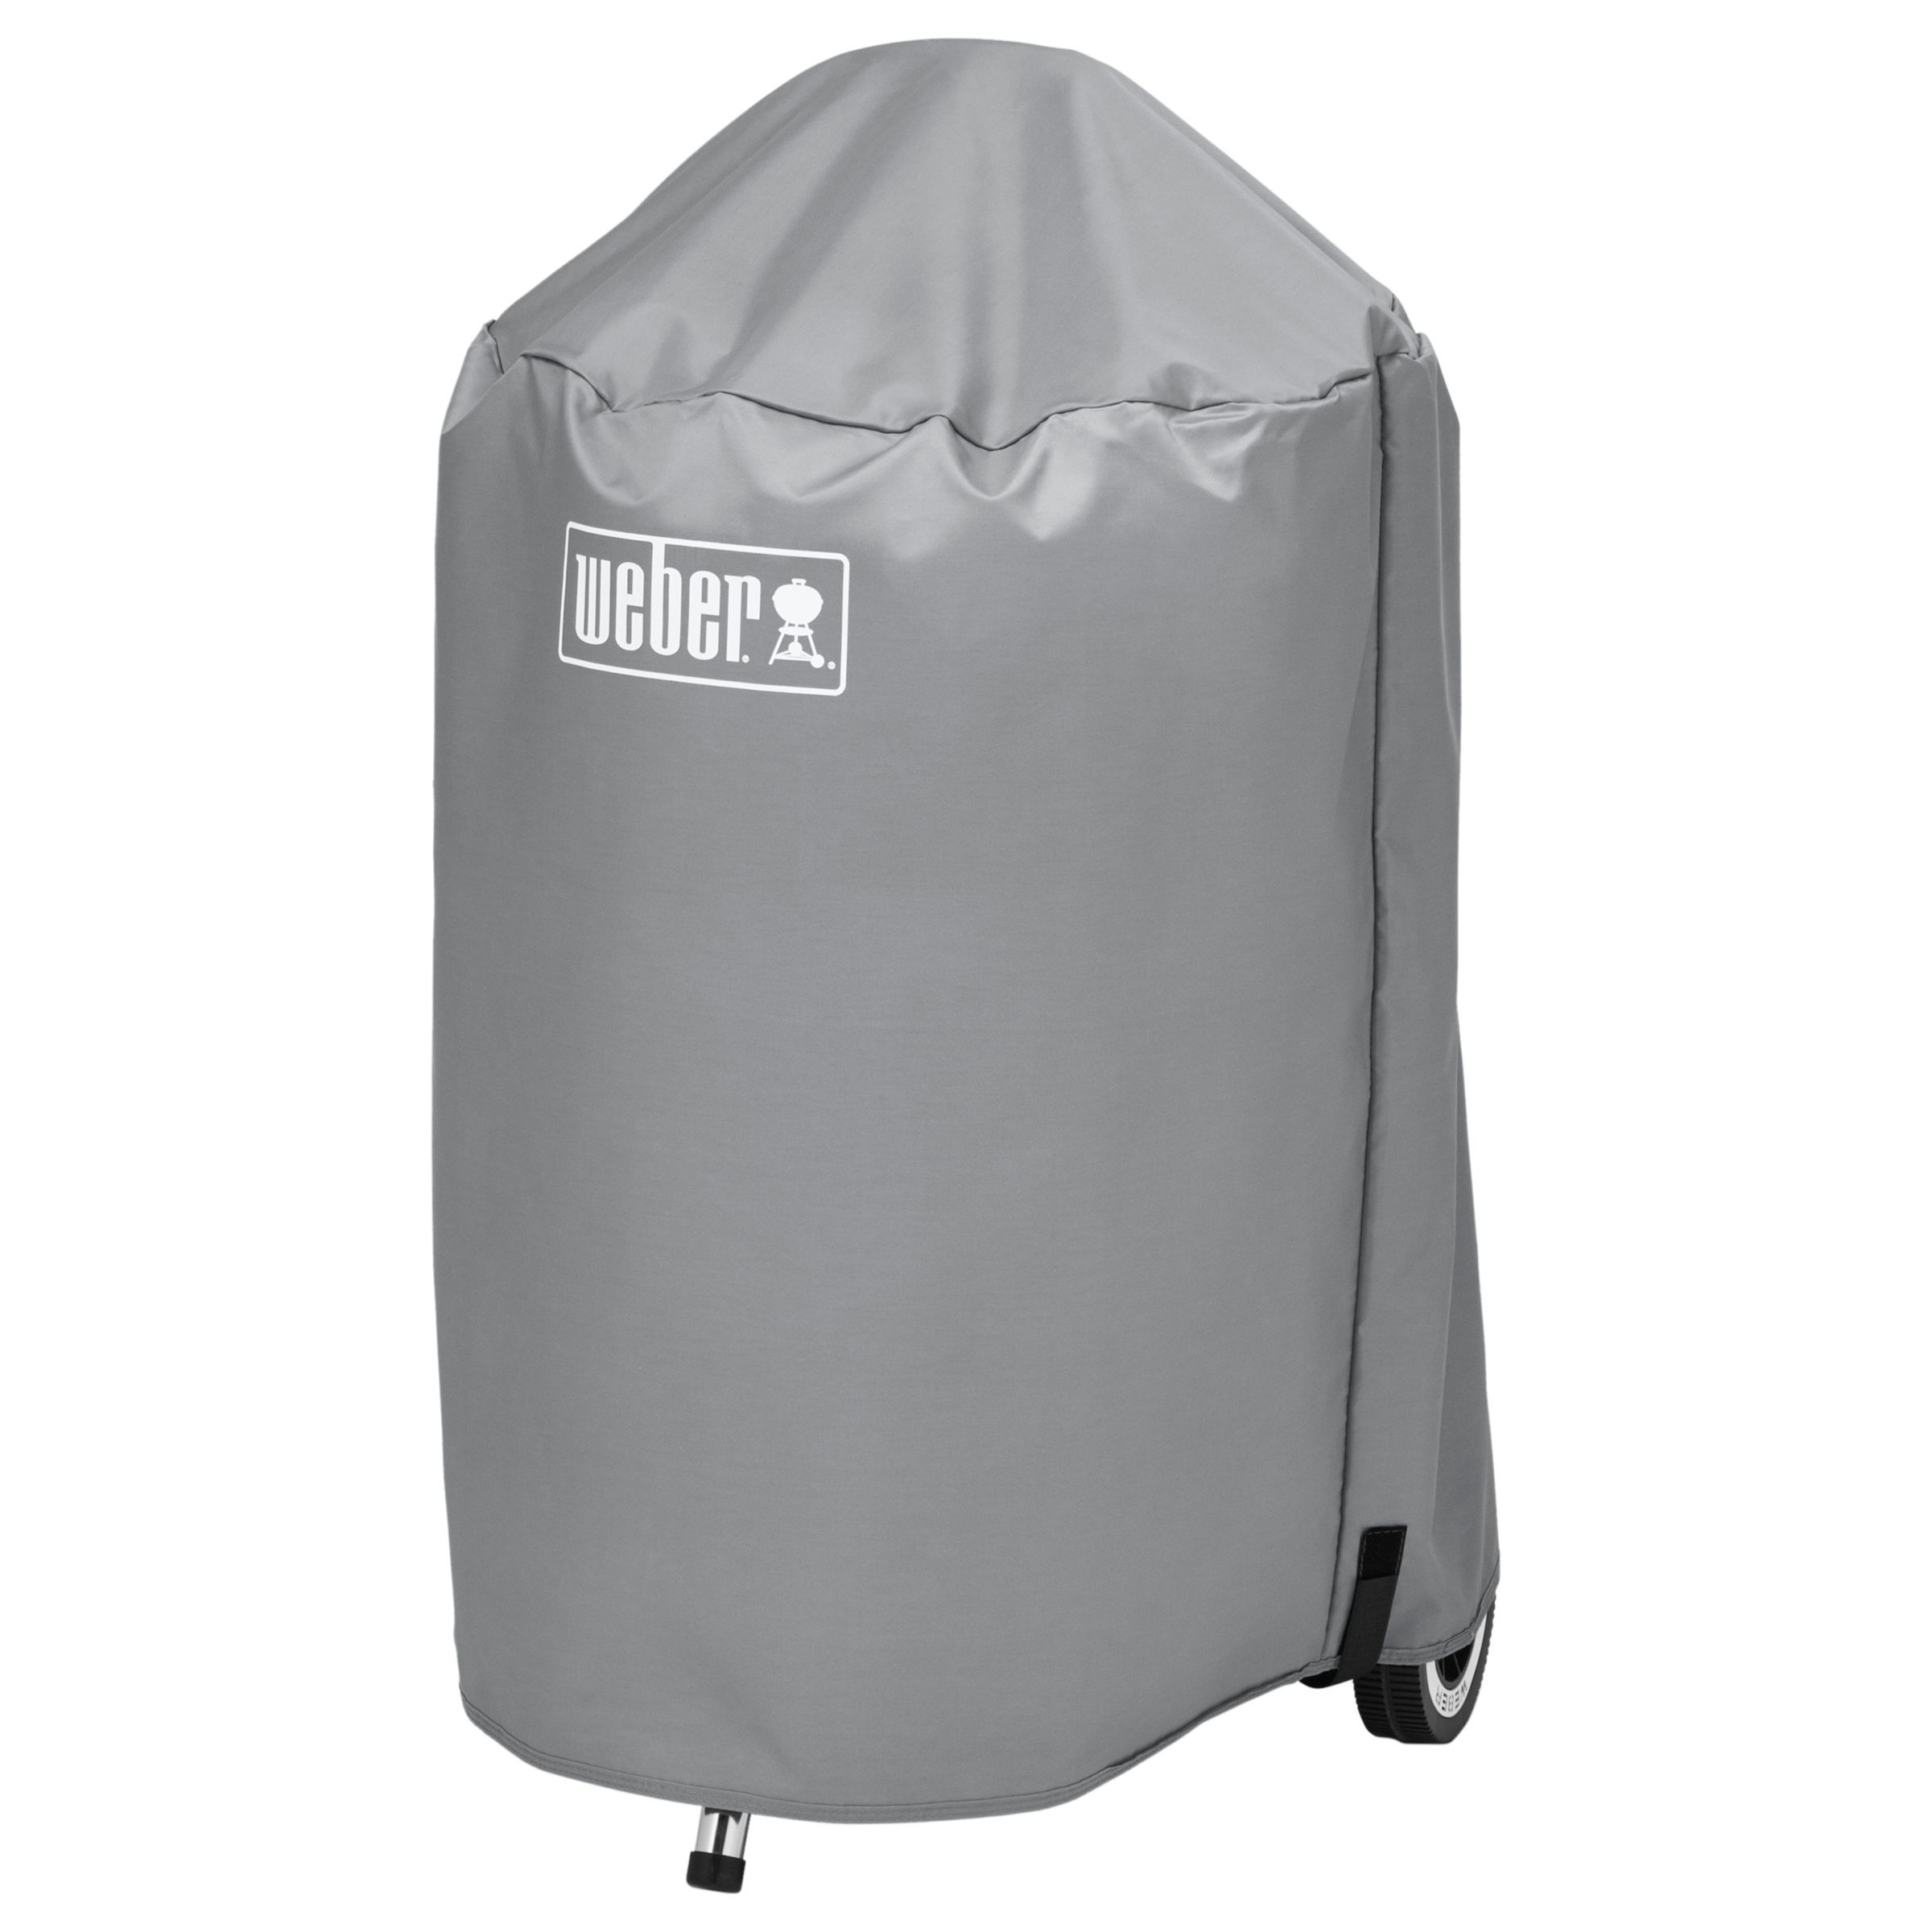 Weber 7175 Vinyl 47cm Kettle Bbq Cover Grey Grill Cover Charcoal Grill Kettle Grills